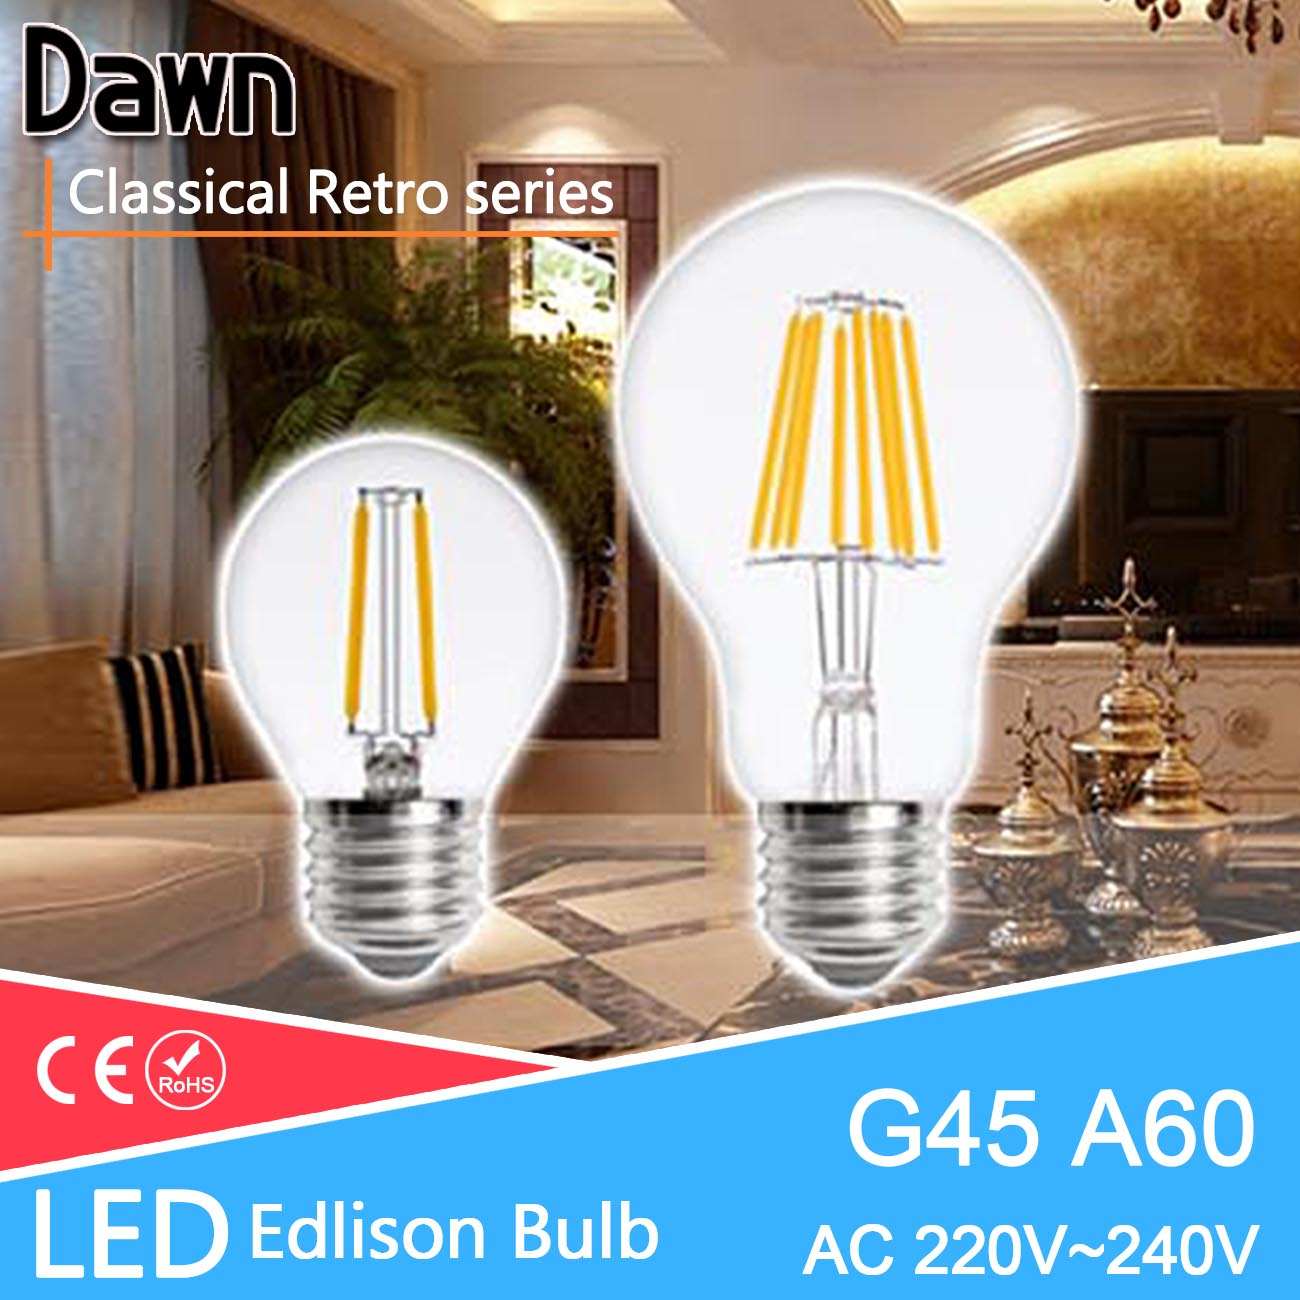 Classical Retro E27 LED Edison Bulb A60 G45 LED Filament Light  4W 8W 12W Lamp Replace 40w Incandescent Pendant Lampada Lighting lumiparty classical edison bulb e27 8w filament luminaria tubular nostalgic filament incandescent antique light bulb home lamp